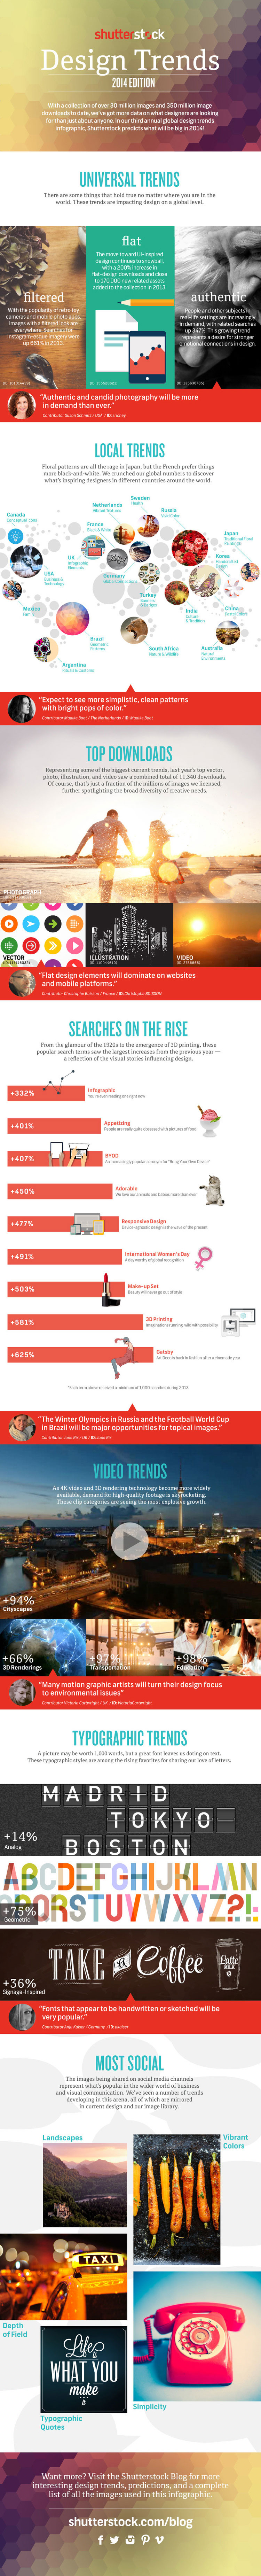 shutterstock-design-trends-2014-infographic